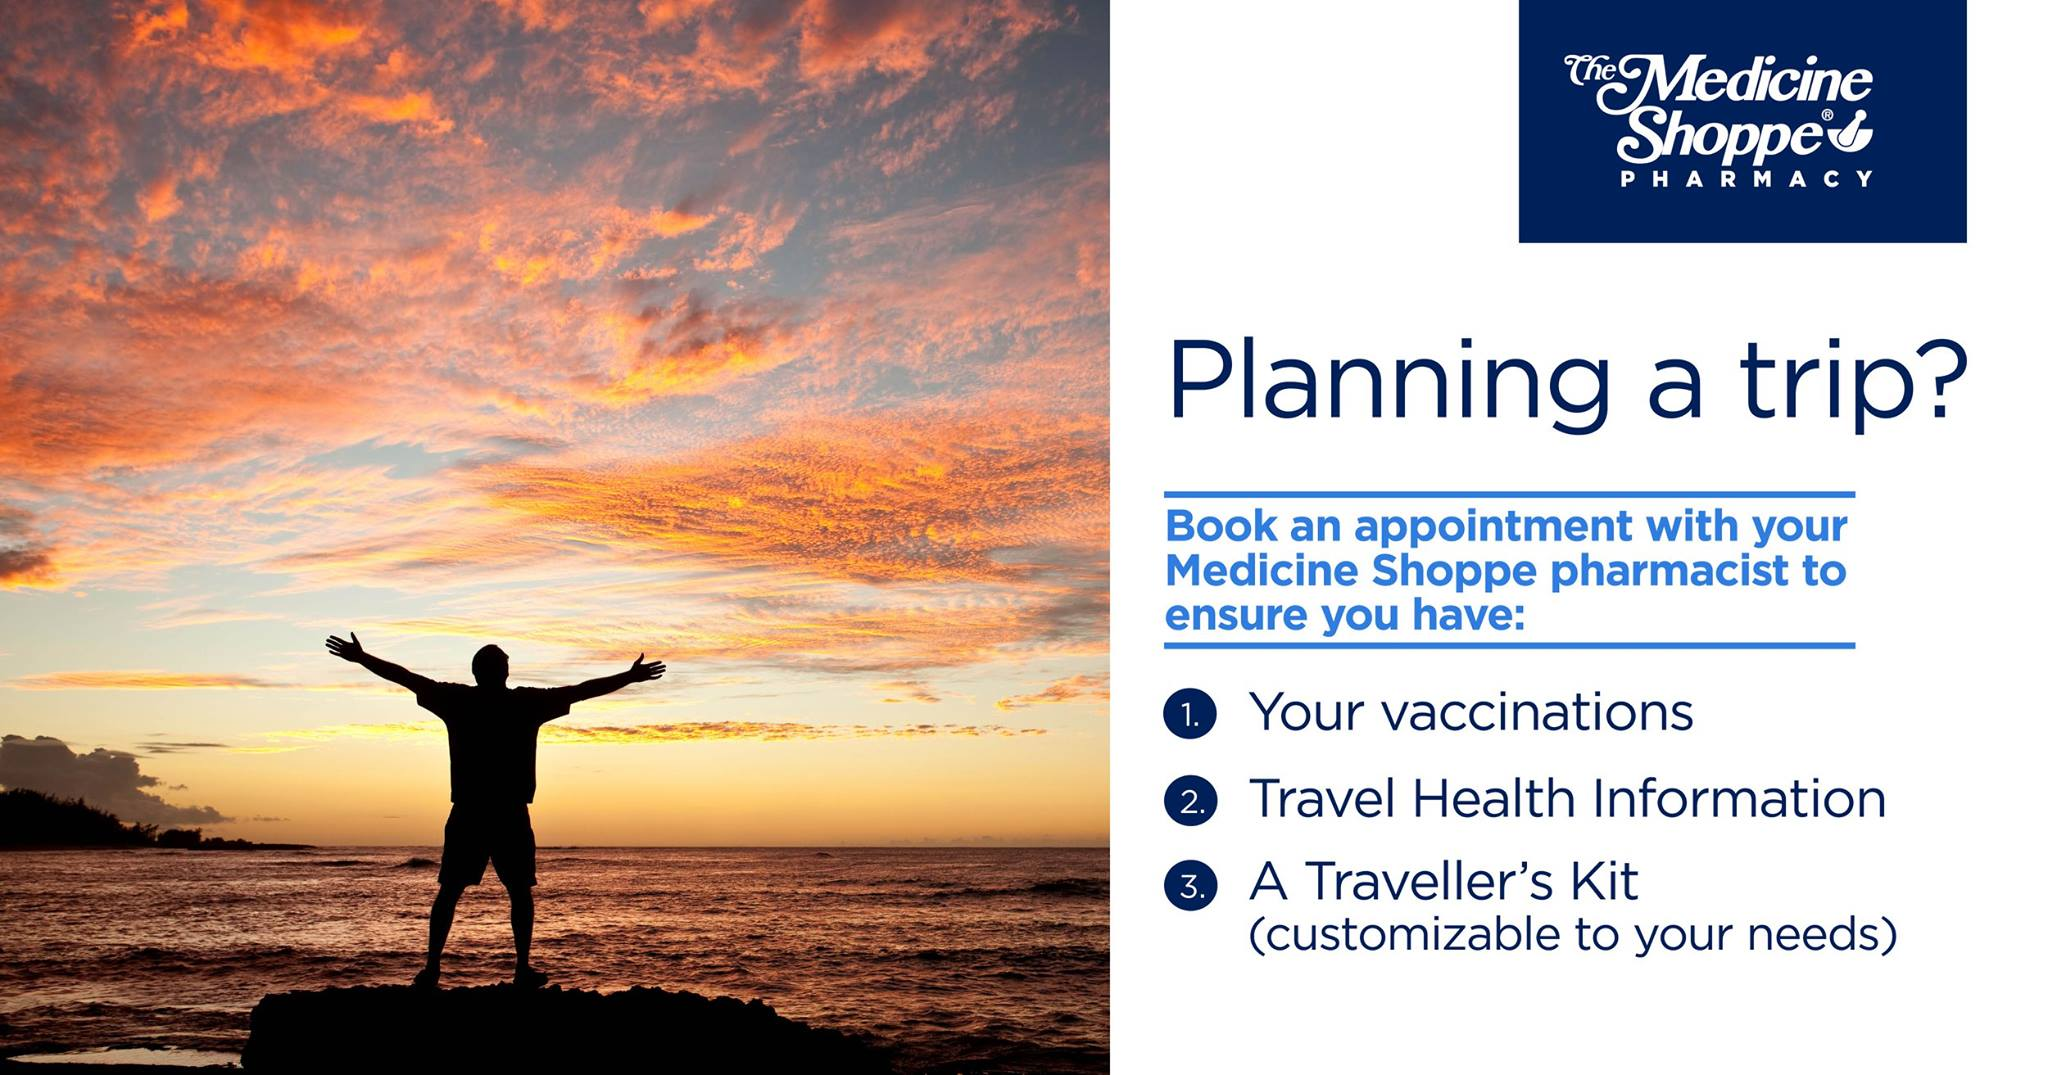 Trip planning info vaccinations health